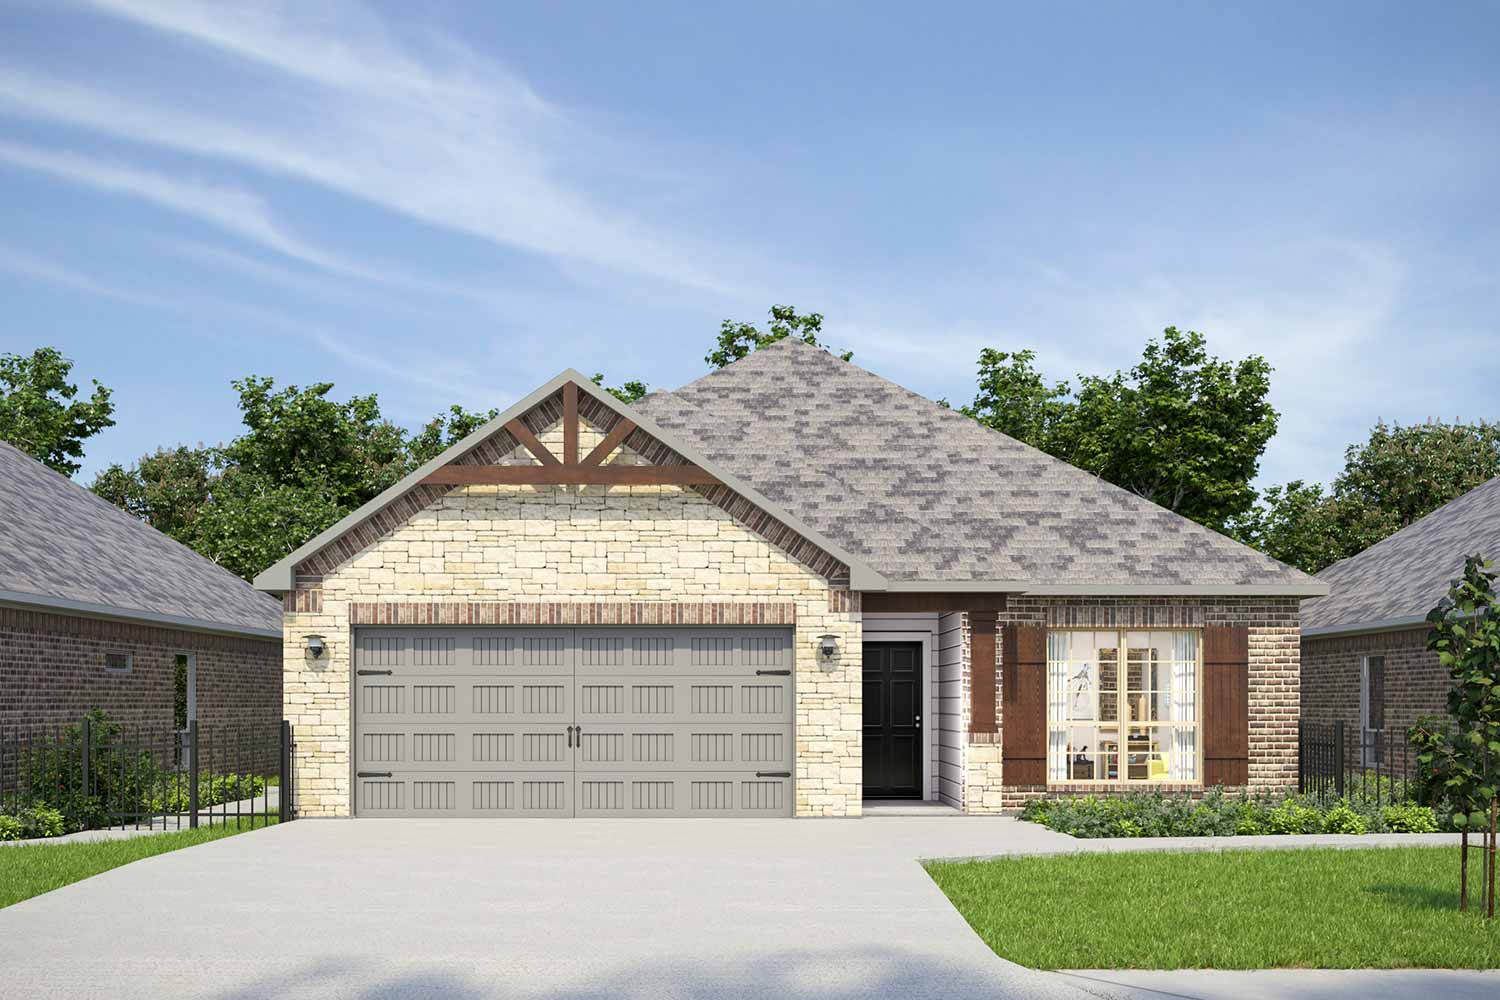 New Homes for Sale in Georgetown TX | 1305 Horizon View Dr